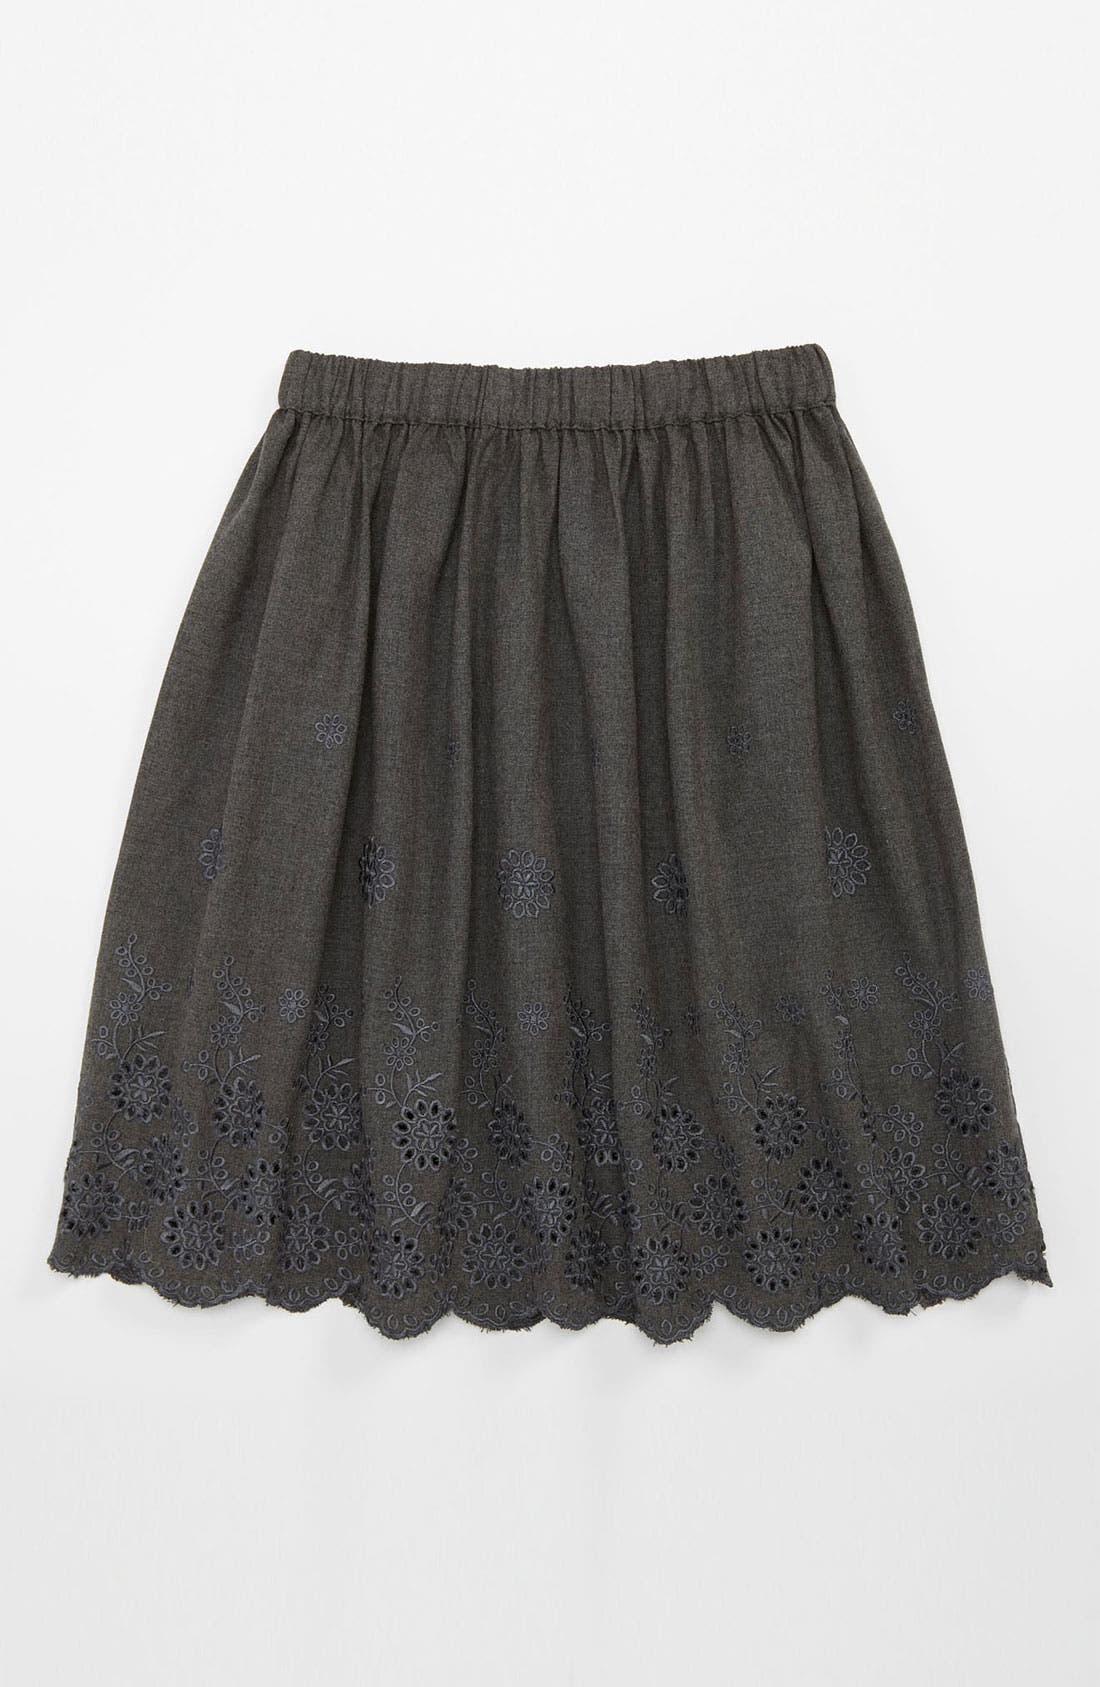 Alternate Image 1 Selected - Peek 'Harlow' Skirt (Toddler, Little Girls & Big Girls)